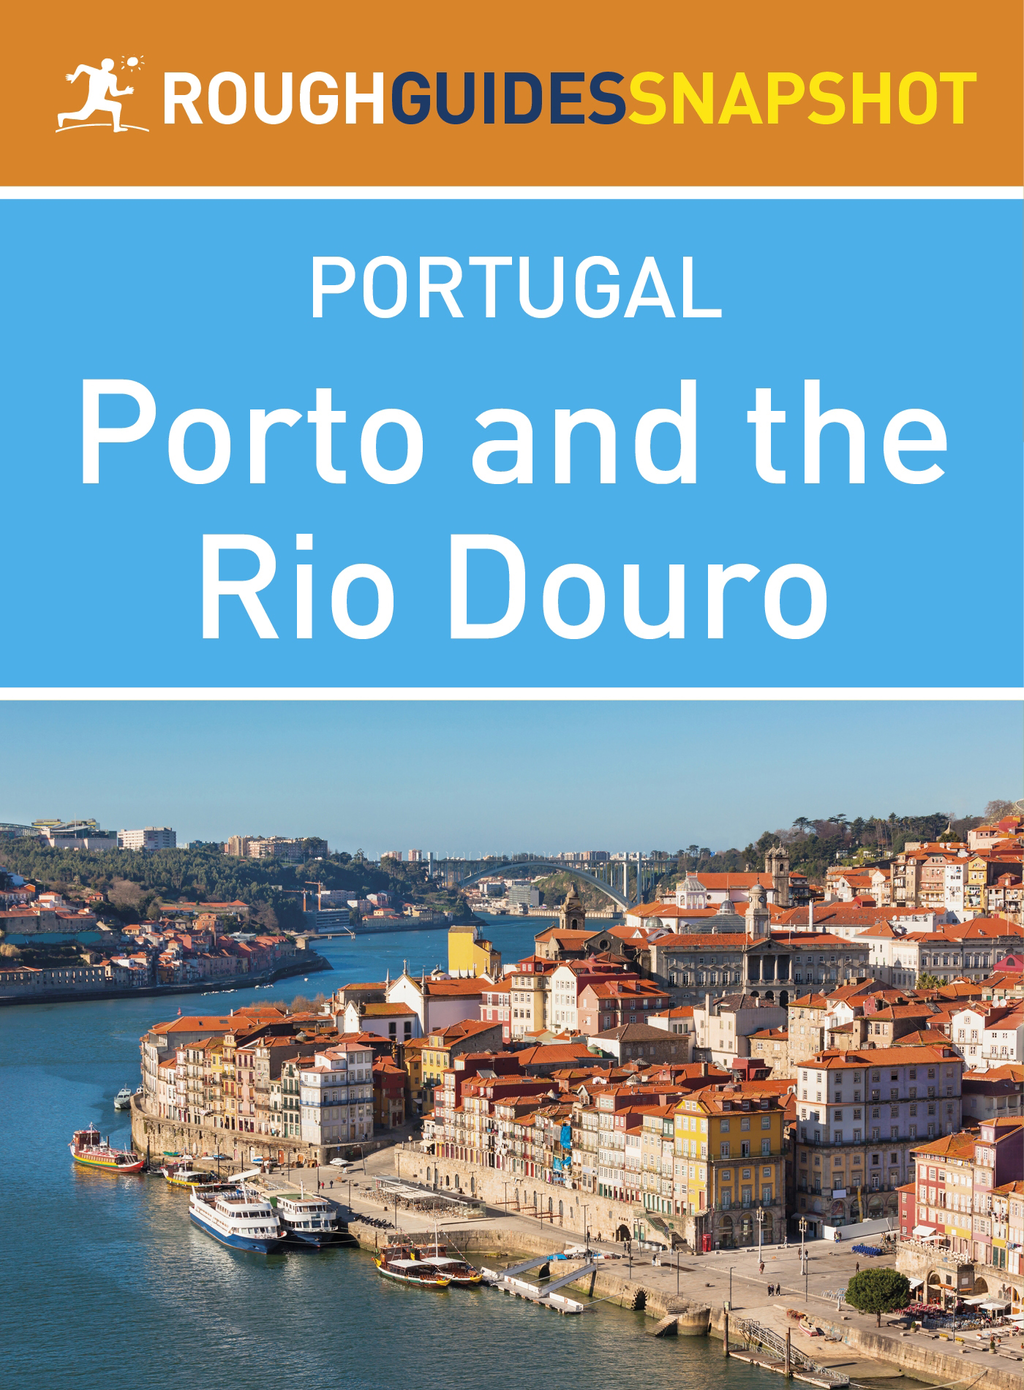 Porto and the Rio Douro Rough Guides Snapshot Portugal (includes Vila do Conde,  Penafiel,  Amarante,  Peso da R�gua,  Lamego,  Pinh�o,  Vila Nova de Foz C�